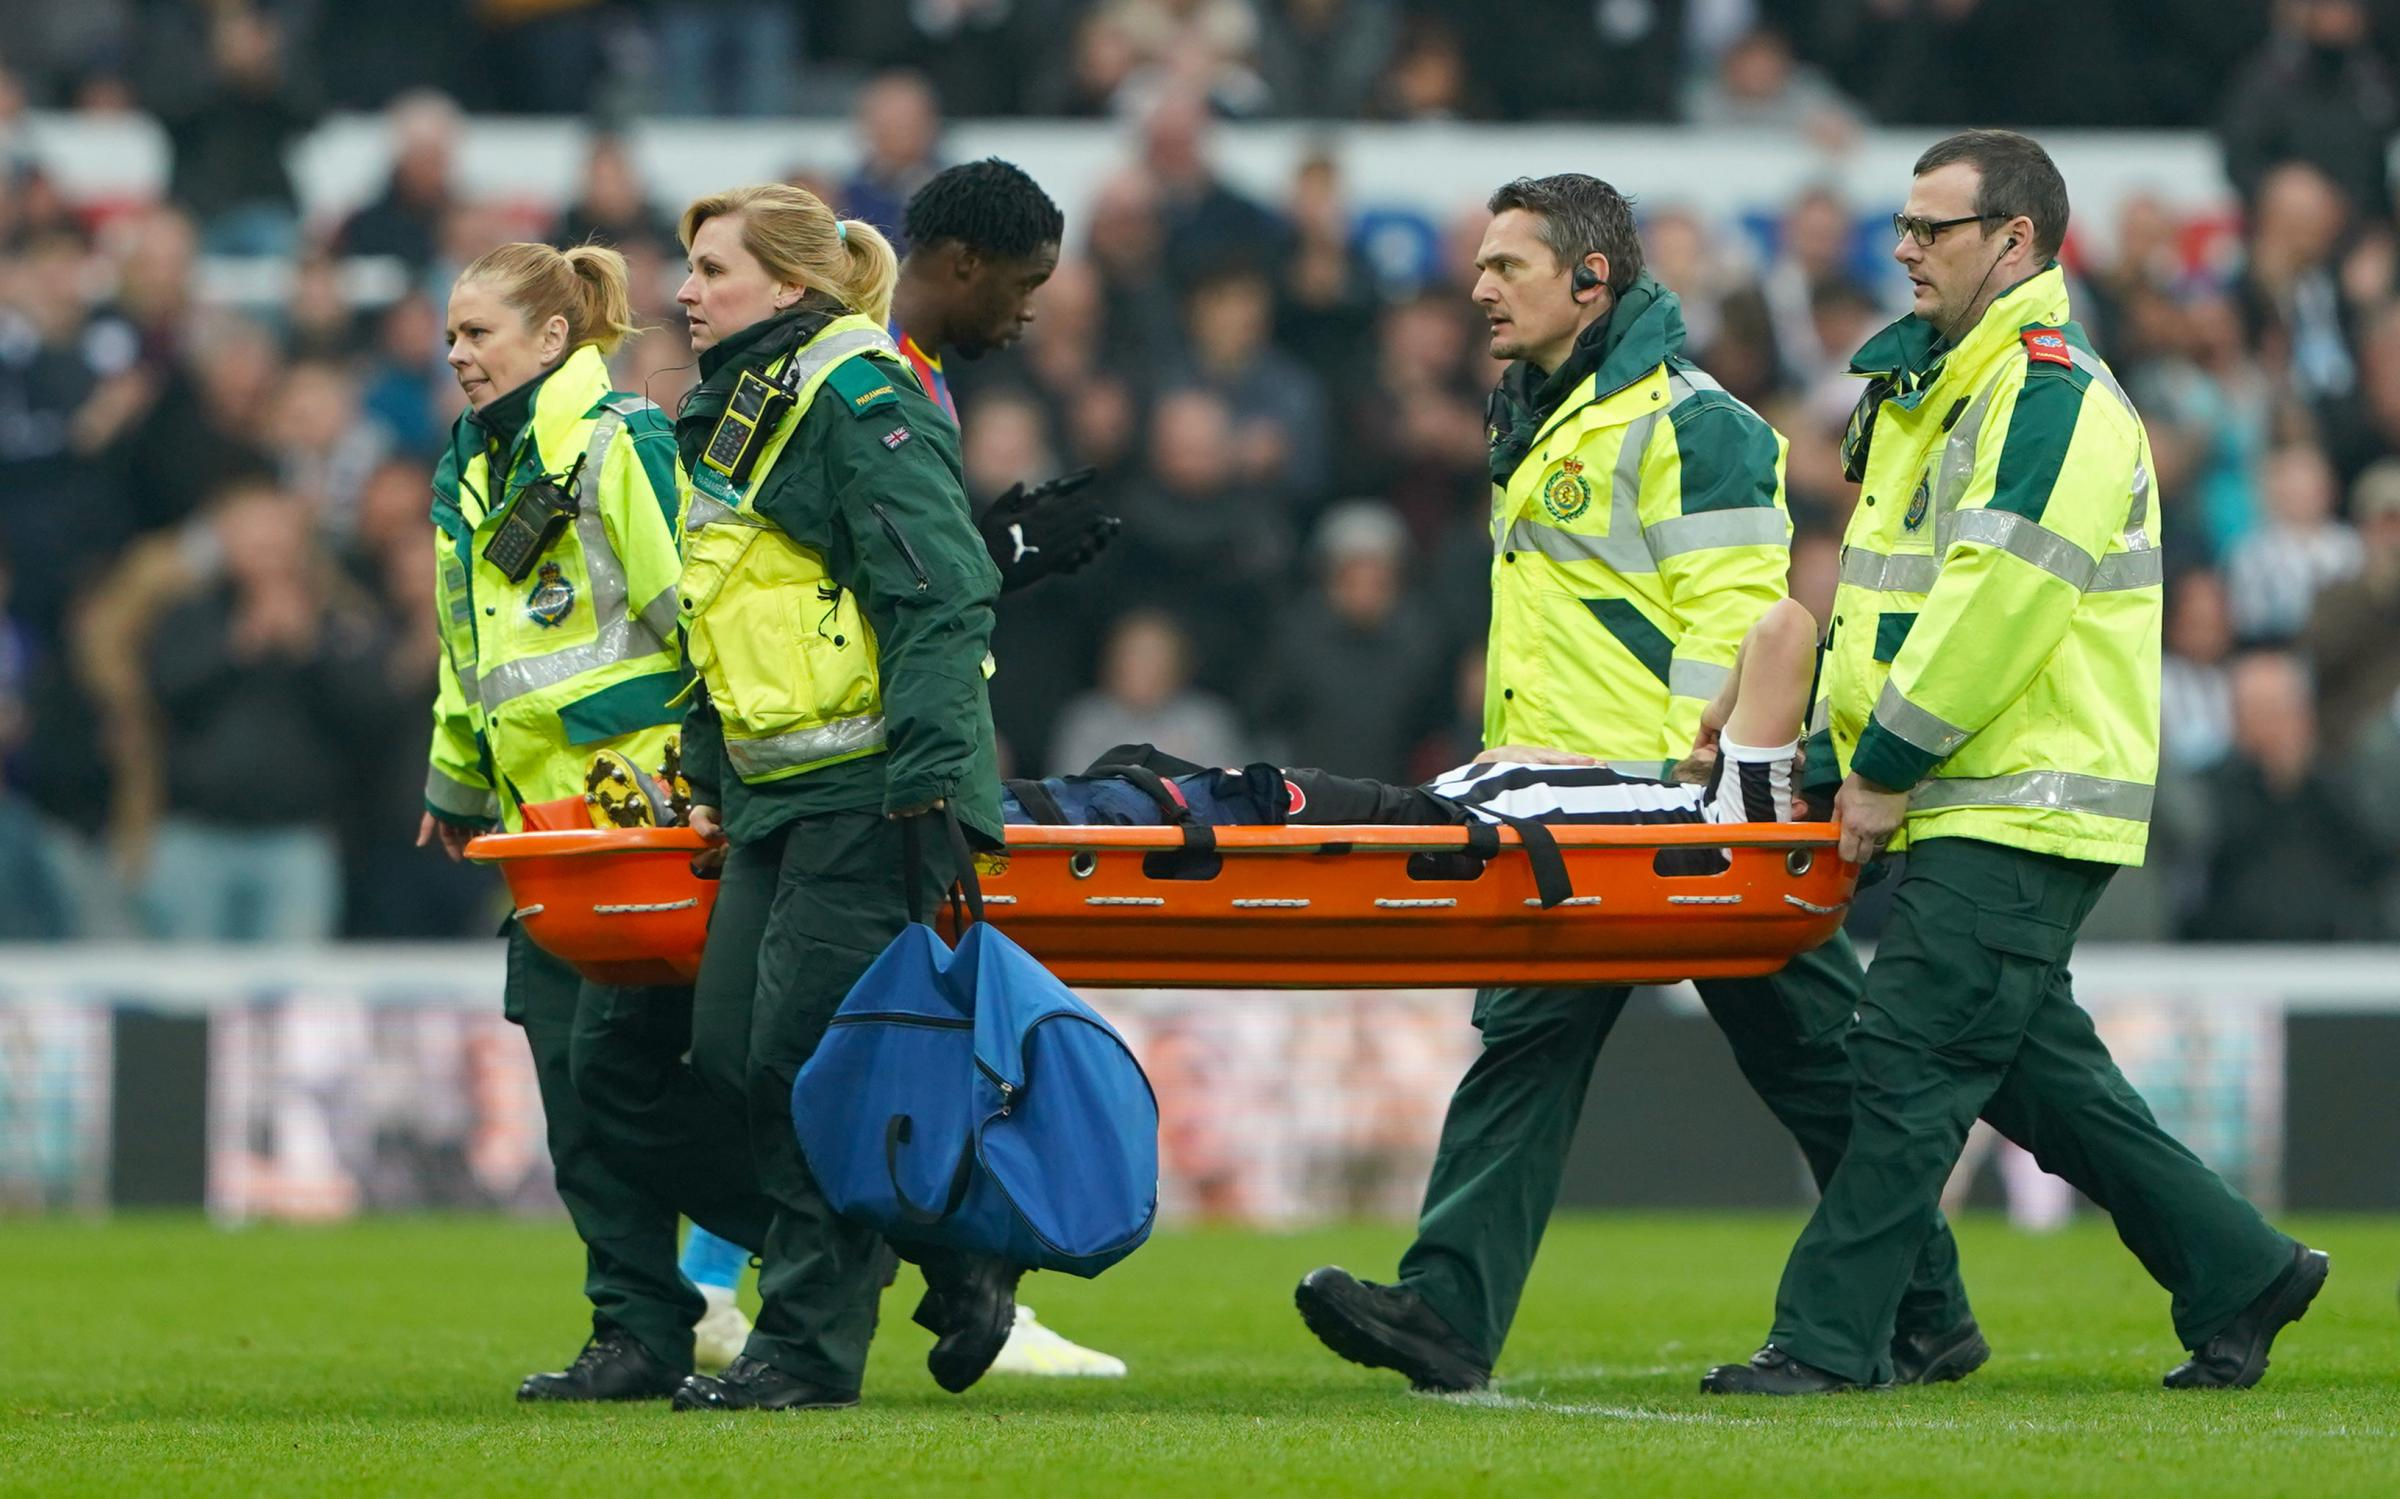 Newcastle United's Florian Lejeune leaves the pitch injured during the Premier League match at St James' Park, Newcastle. PRESS ASSOCIATION Photo. Picture date: Saturday April 6, 2019. See PA story SOCCER Newcastle. Photo credit should read: Owen